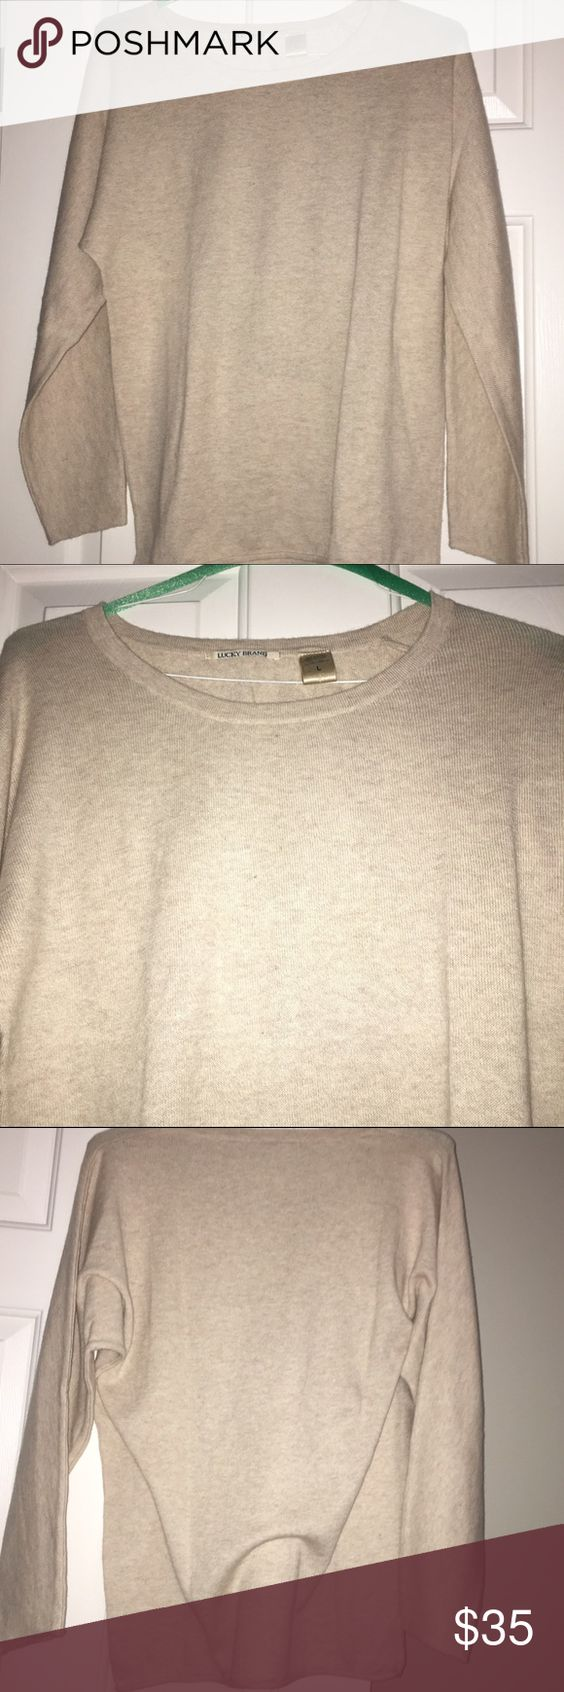 Lucky brand 40% cashmere sweater size L Lucky brand 40% cashmere sweater size L Lucky Brand Sweaters Crew & Scoop Necks